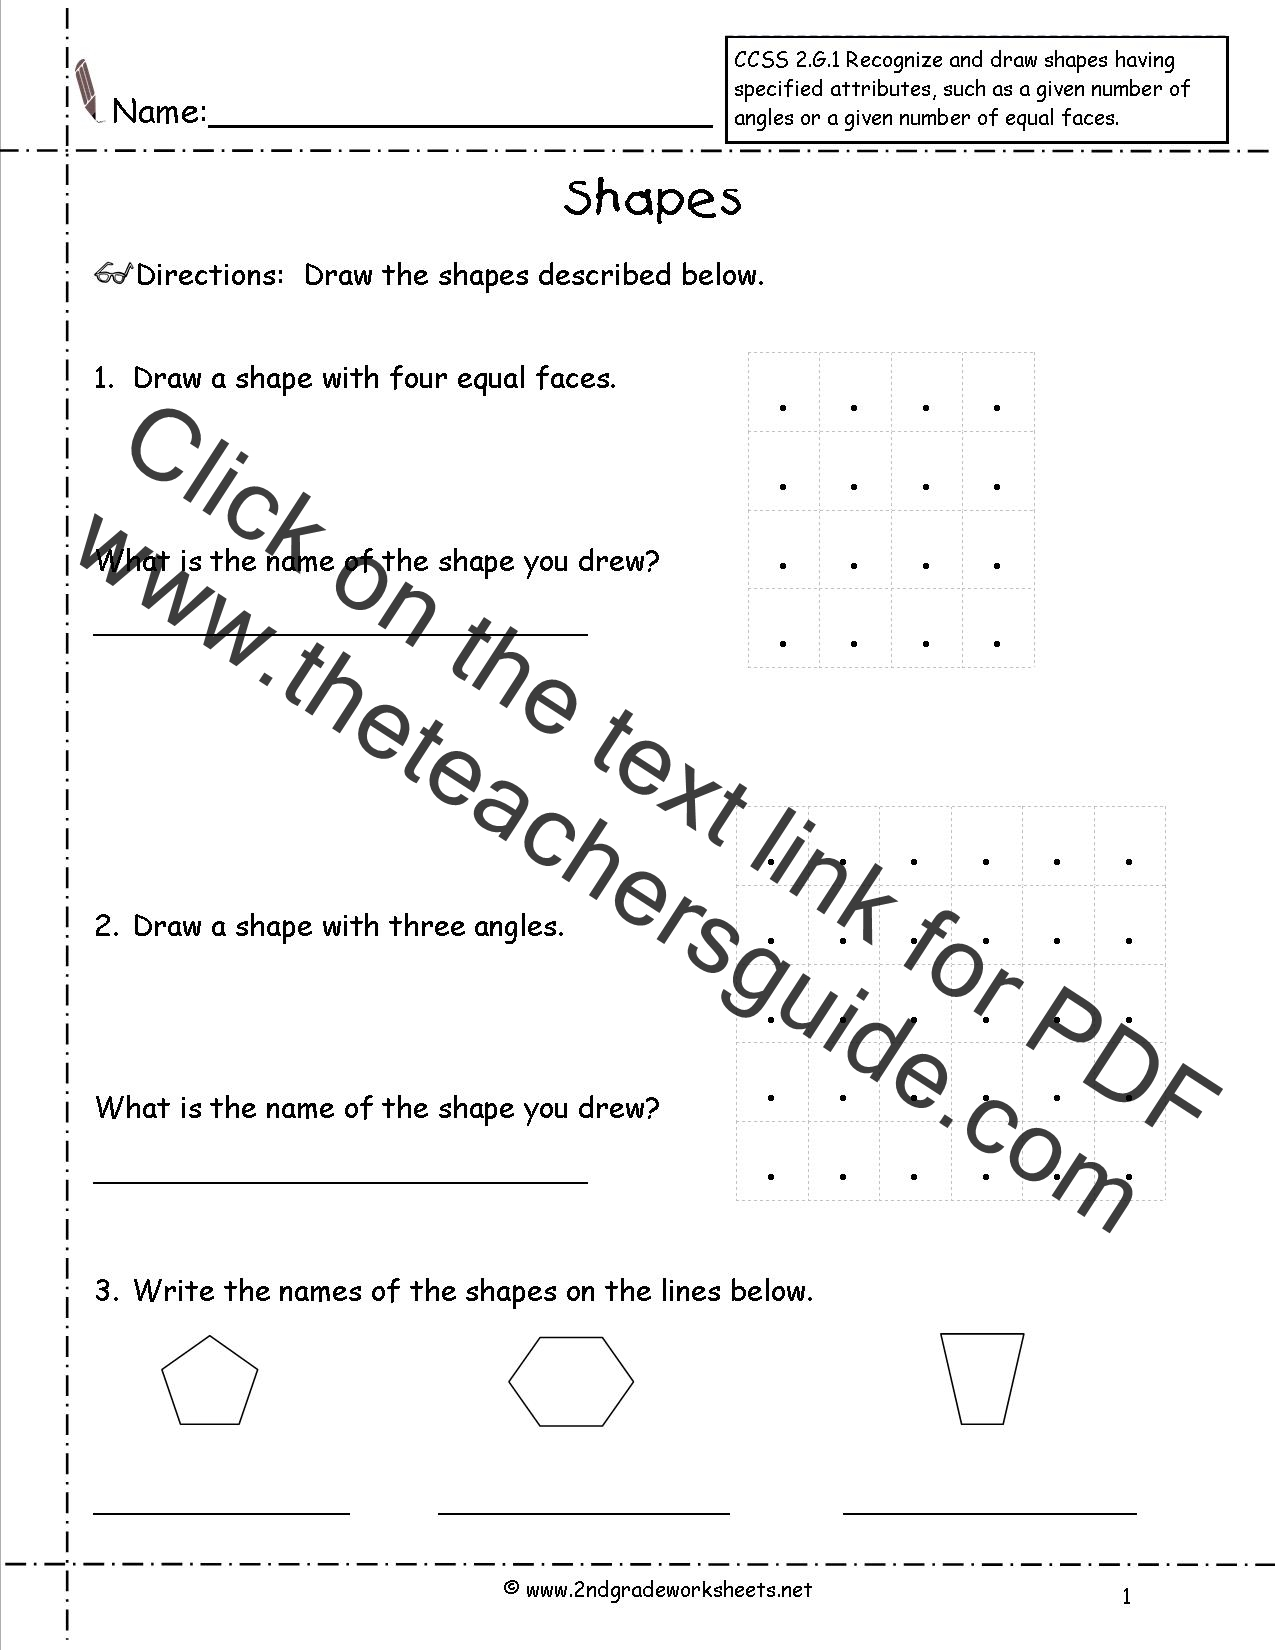 Ccss 2 G 1 Worksheets